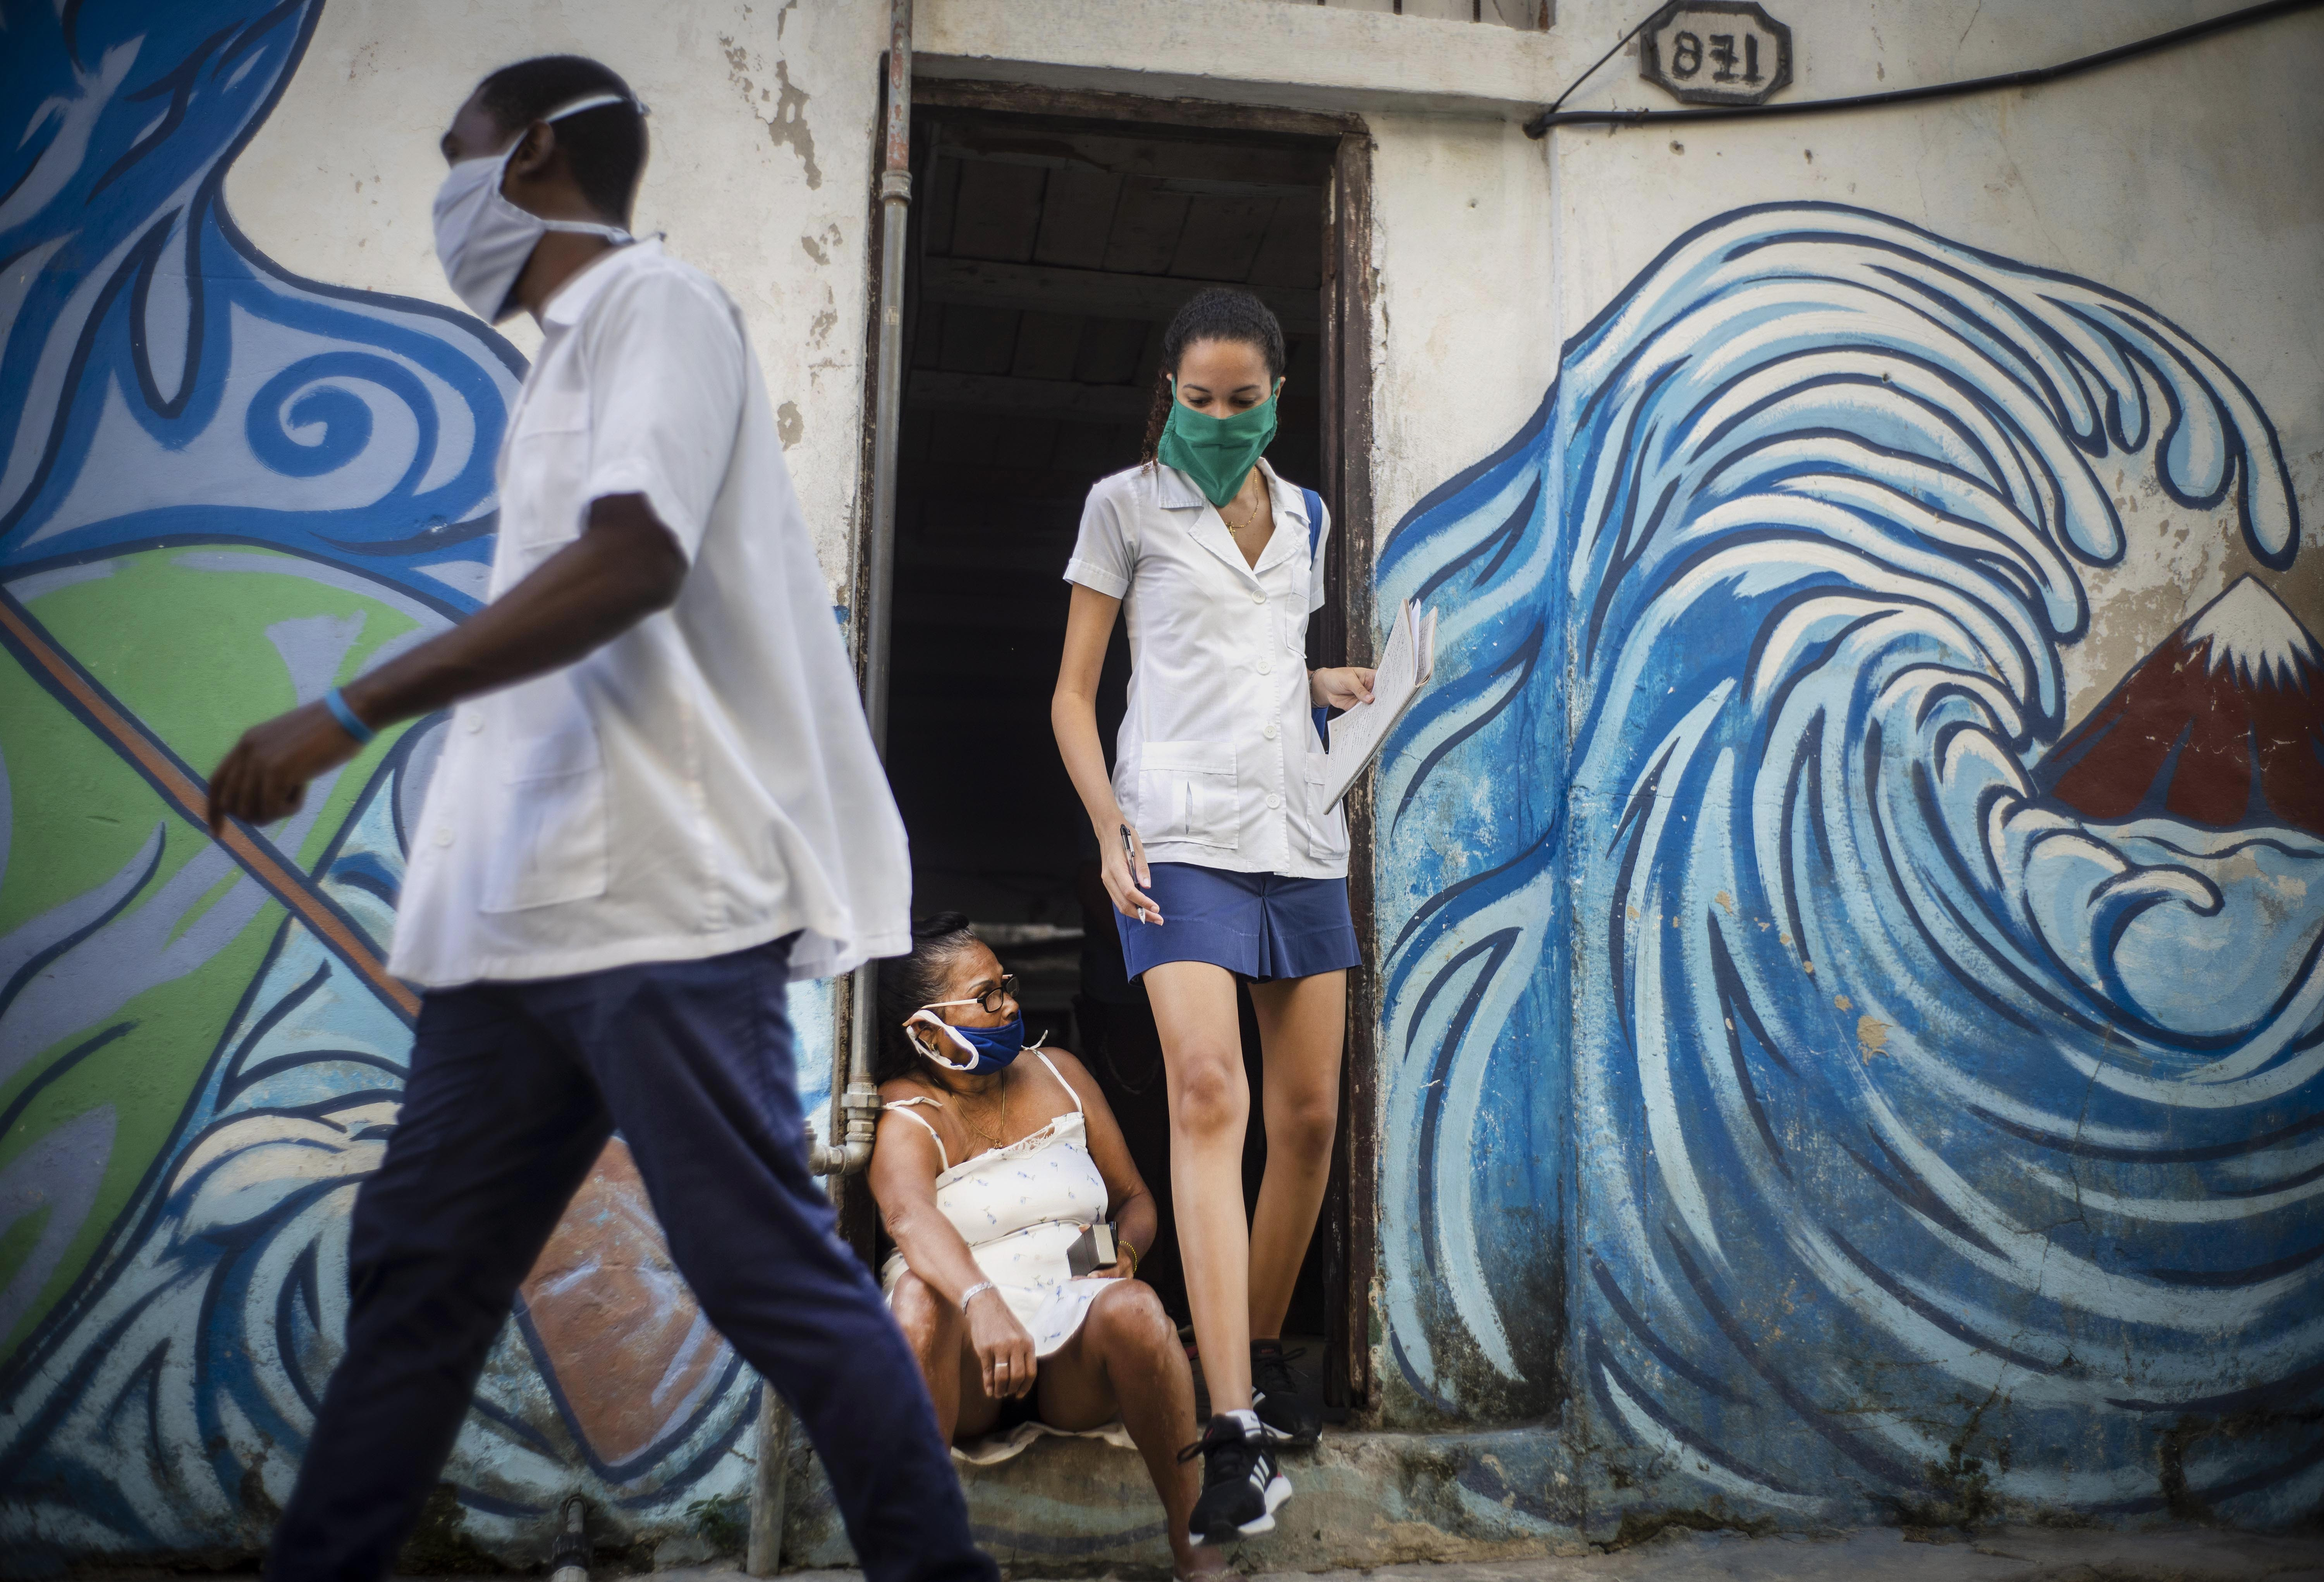 Cubans must be able to protect themselves from the coronavirus